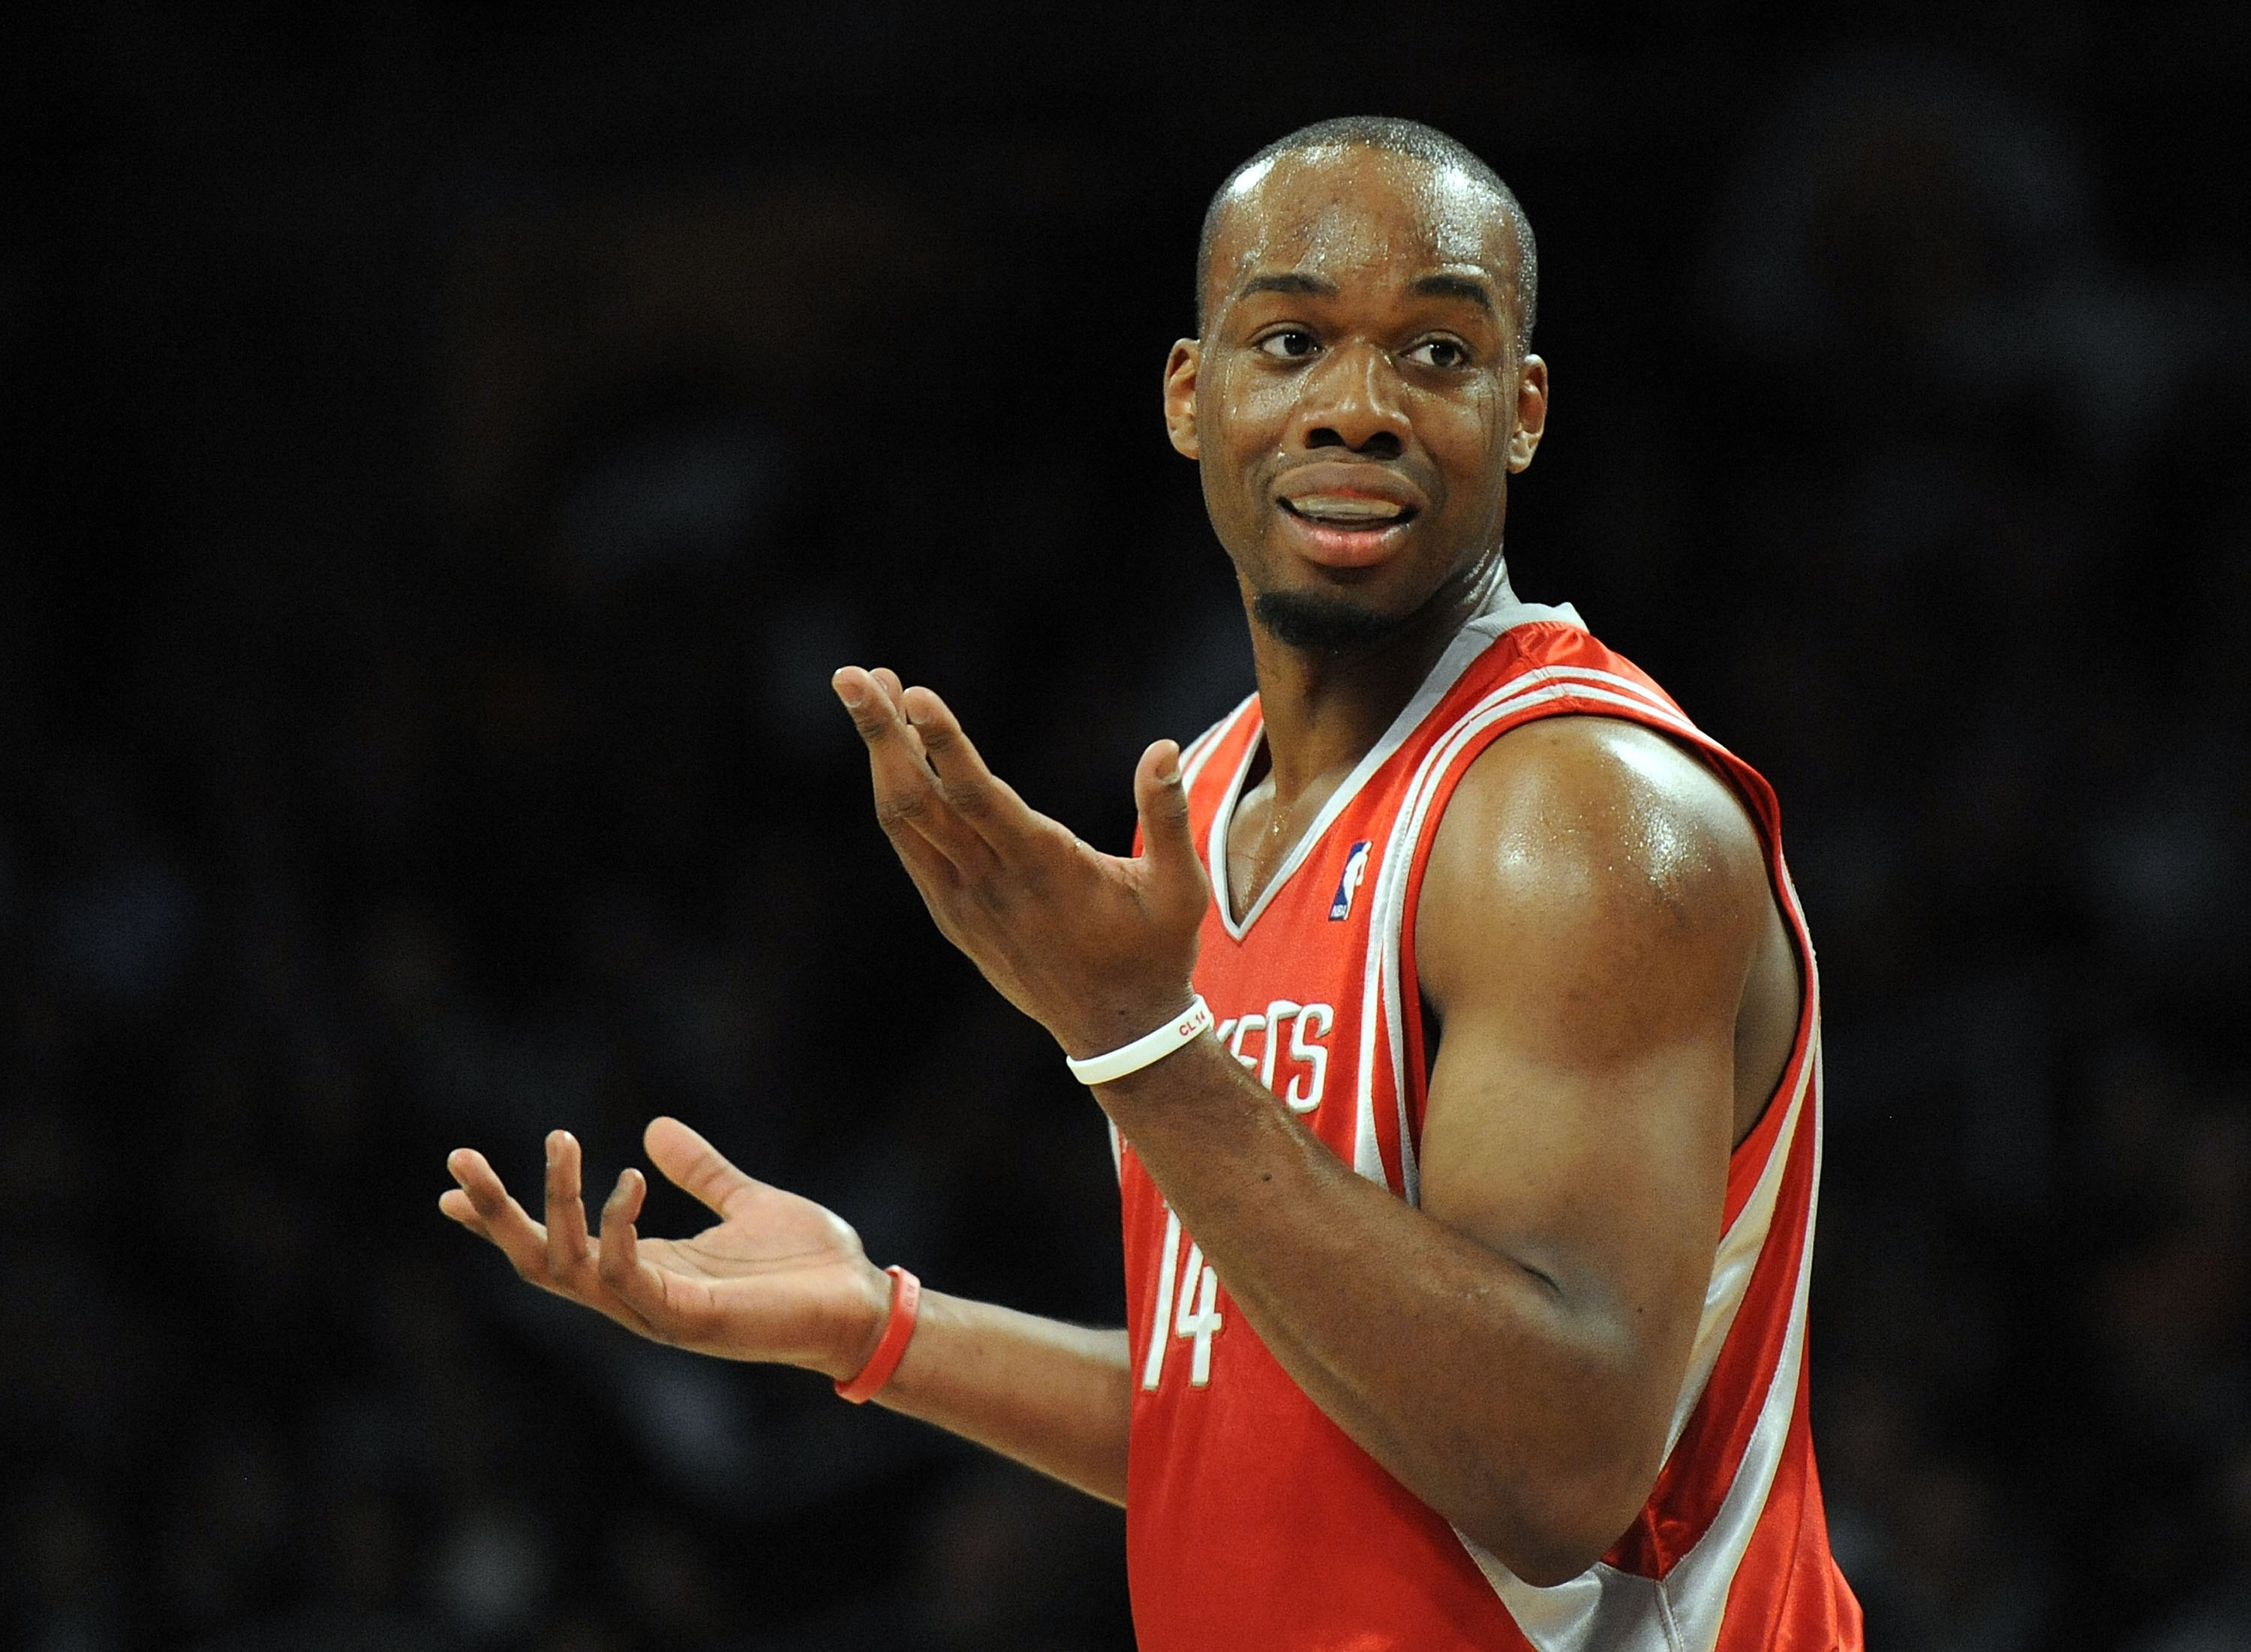 LOS ANGELES, CA - JANUARY 05:  Carl Landry #14 of the Houston Rockets complains about a foul against the Los Angeles Lakers during the first half at Staples Center on January 5, 2010 in Los Angeles, California.  NOTE TO USER: User expressly acknowledges a